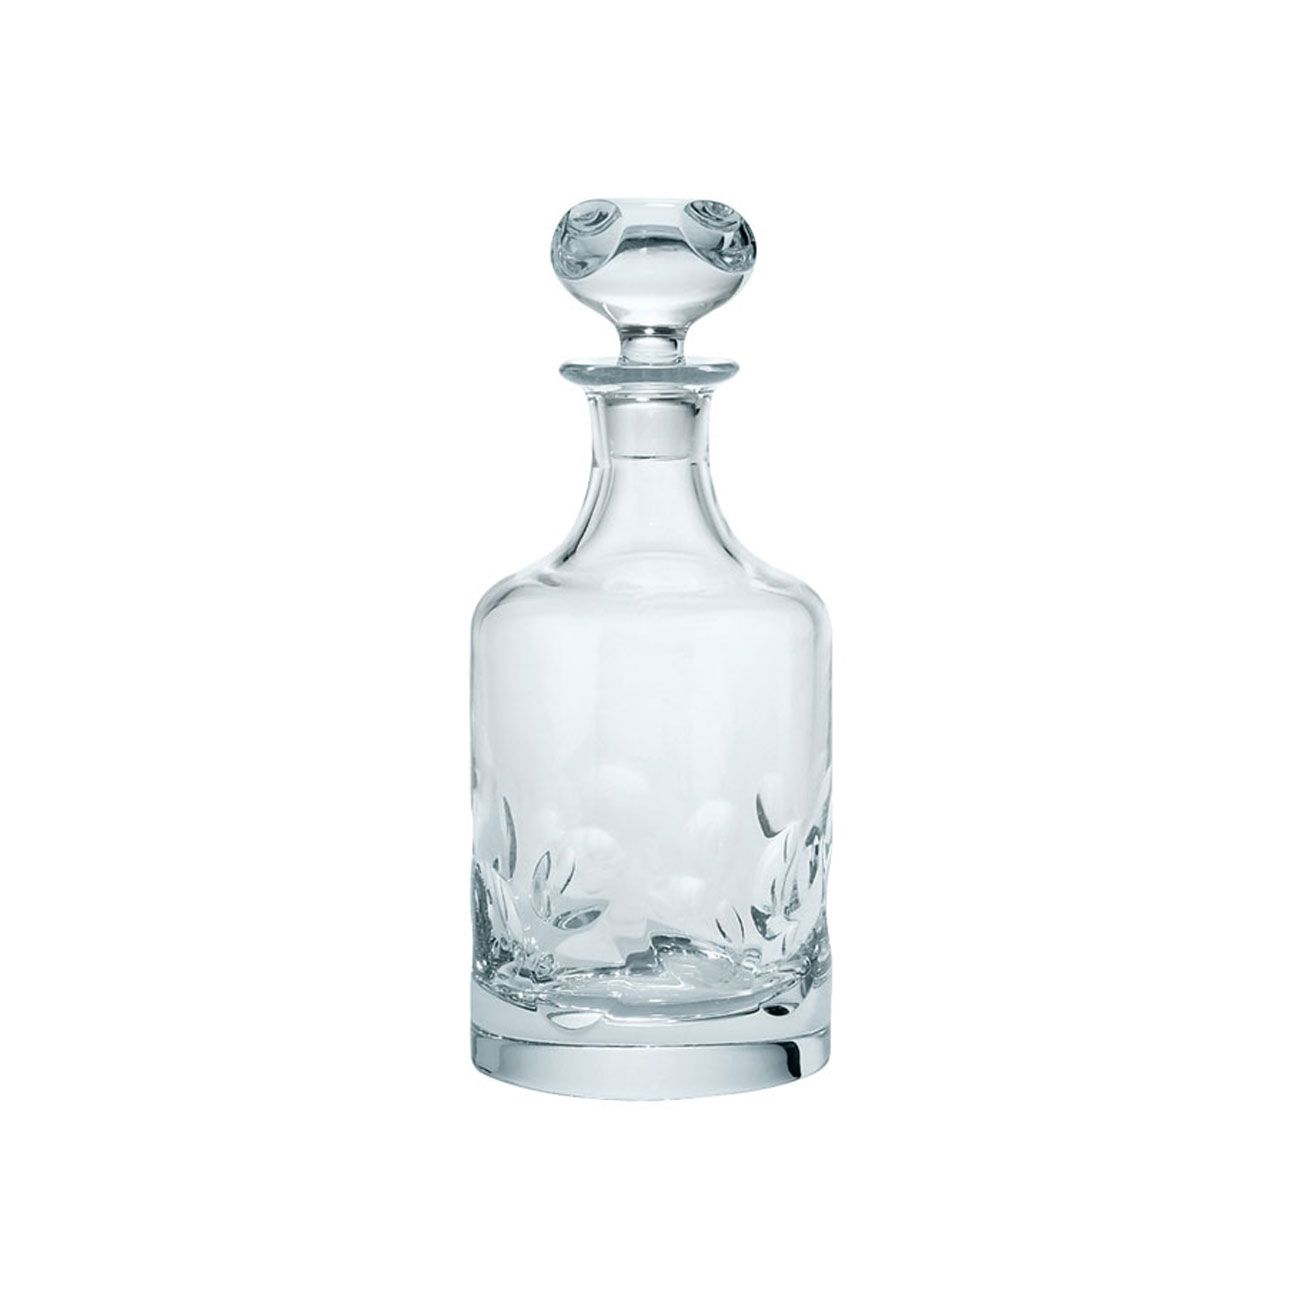 Christofle Cluny Whiskey Decanter